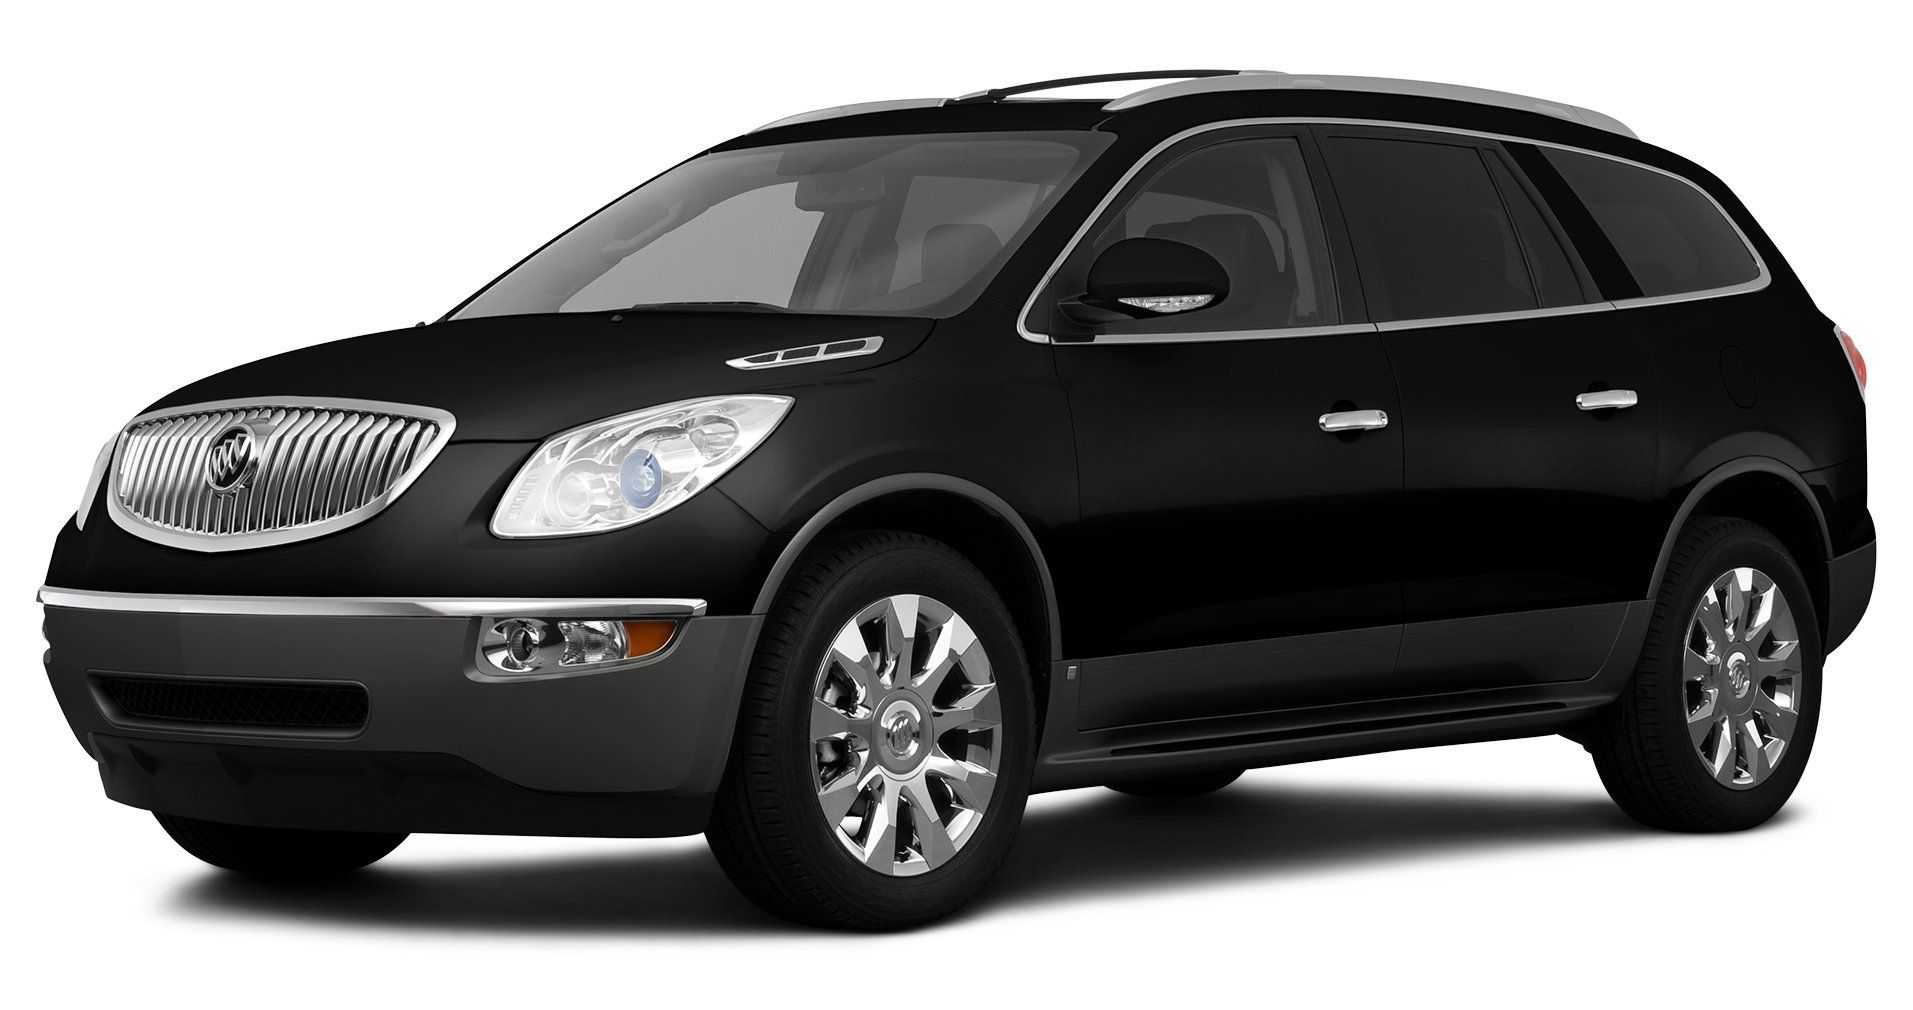 2011 Buick Enclave Owners Manual Buick Enclave Buick Owners Manuals